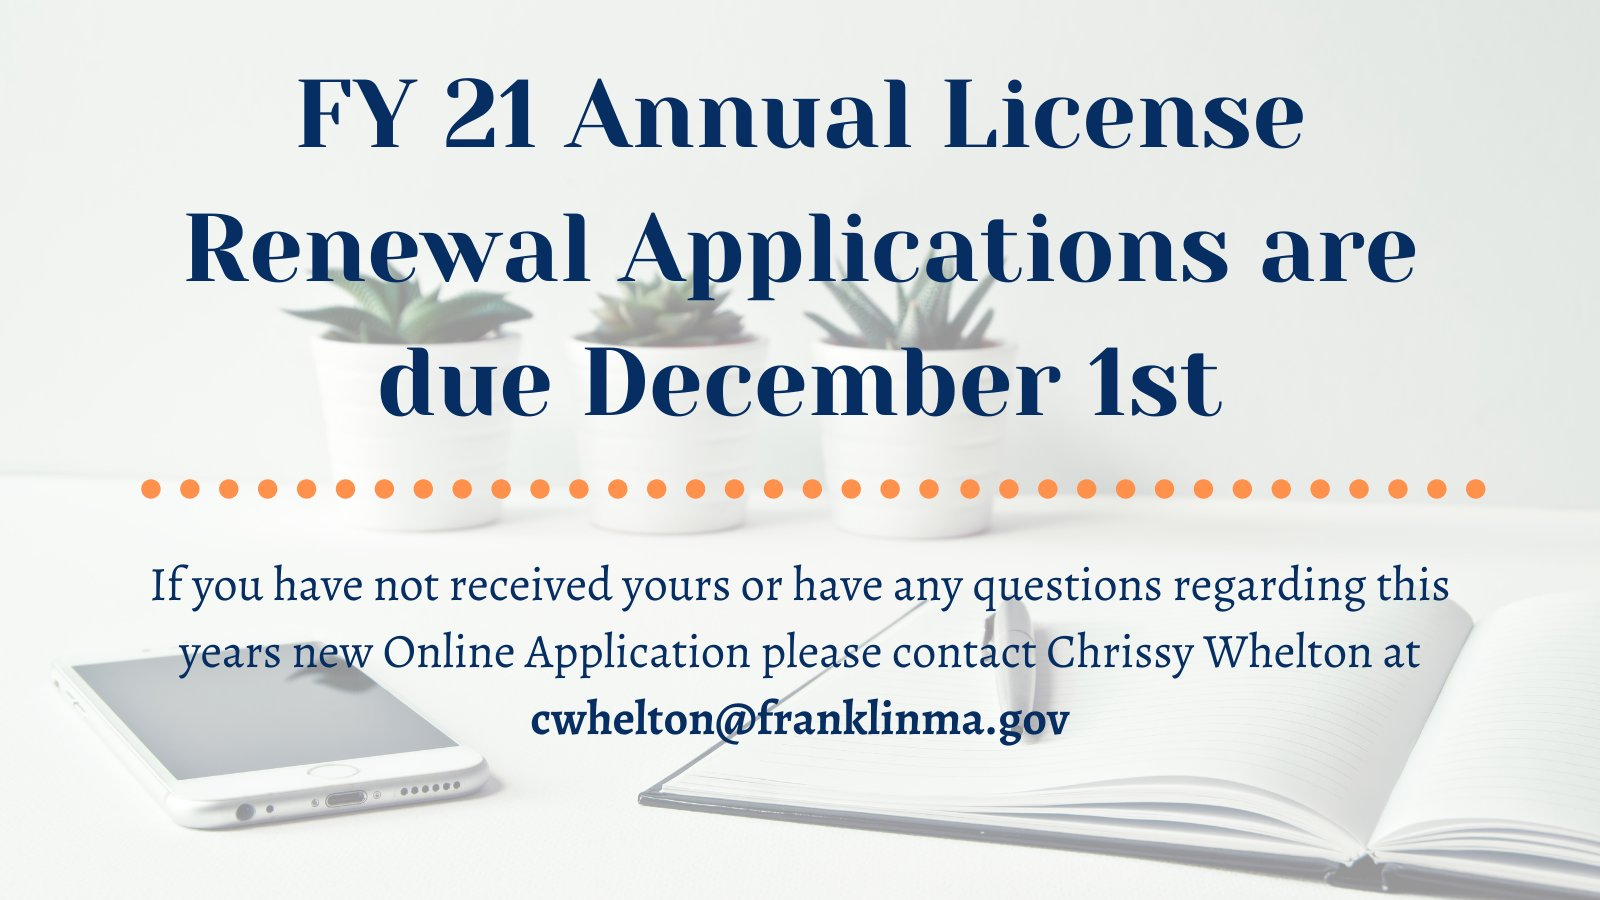 Town of Franklin, MA:  FY21 Annual License Renewal Applications